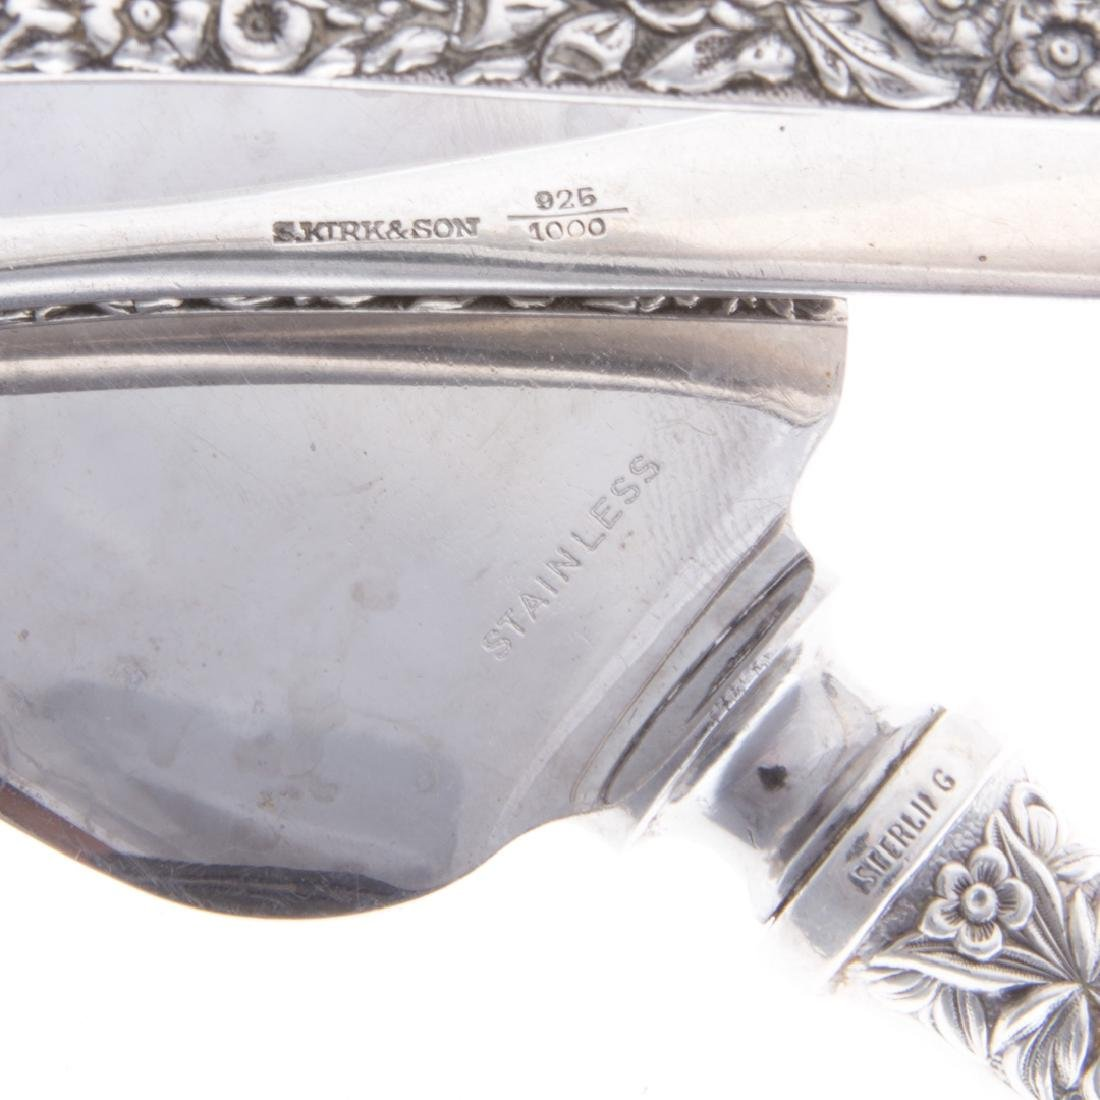 Kirk sterling silver serving utensils (5) - 5